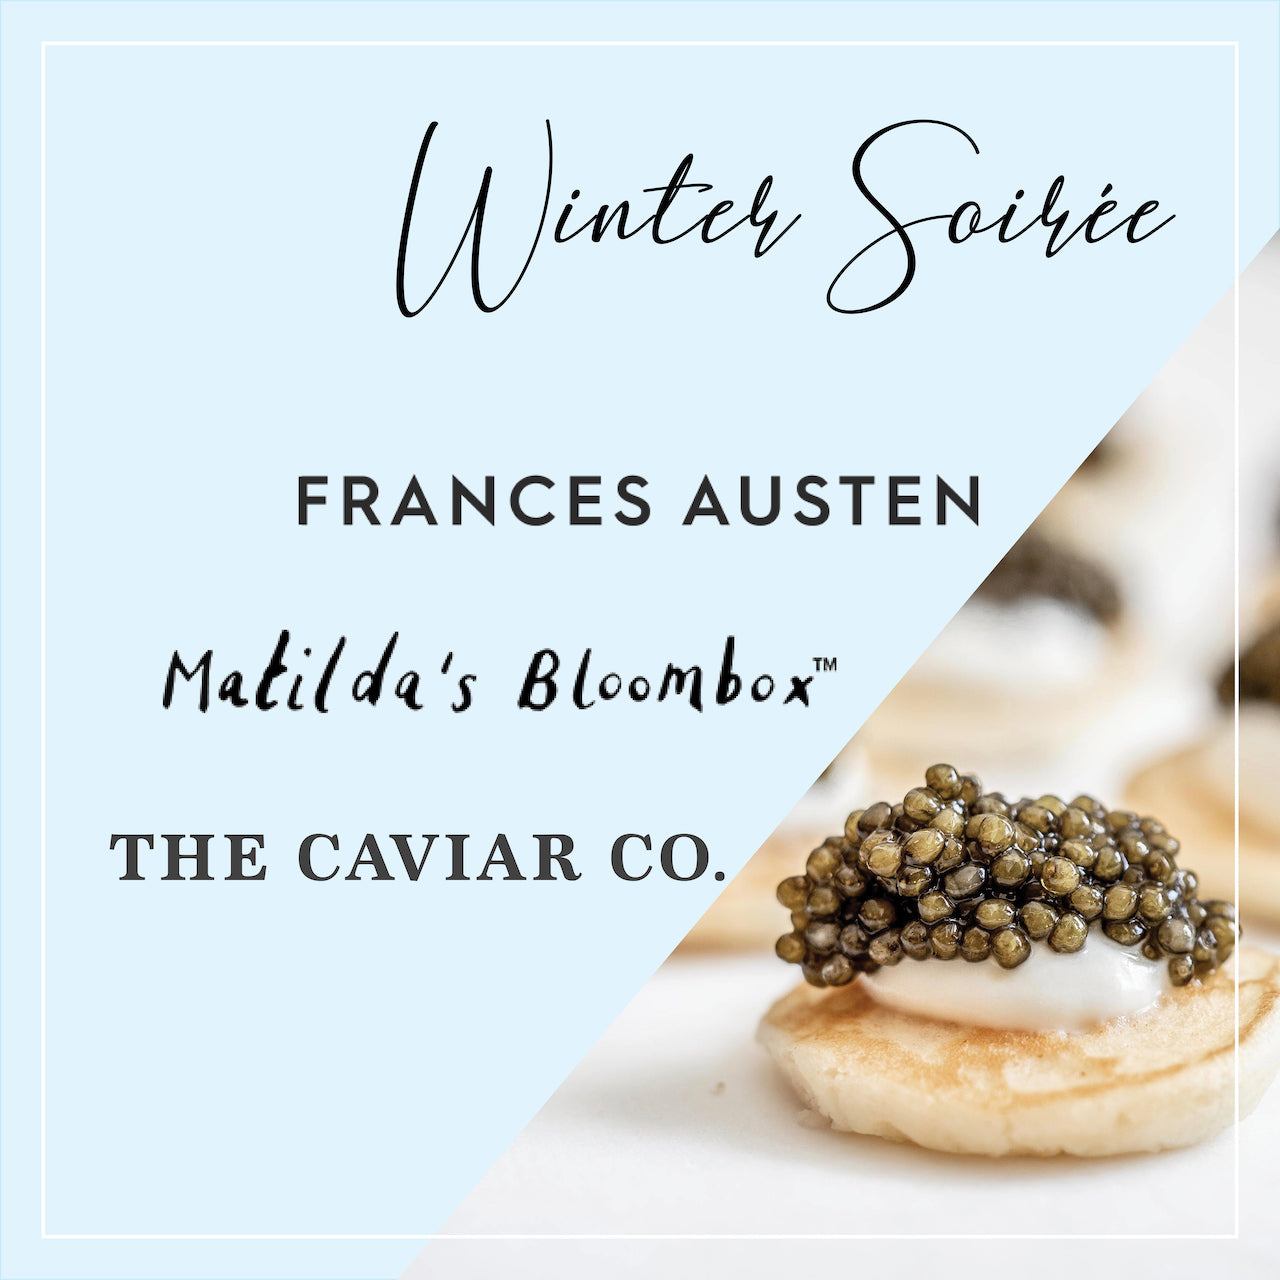 Winter Soirée at The Caviar Co.